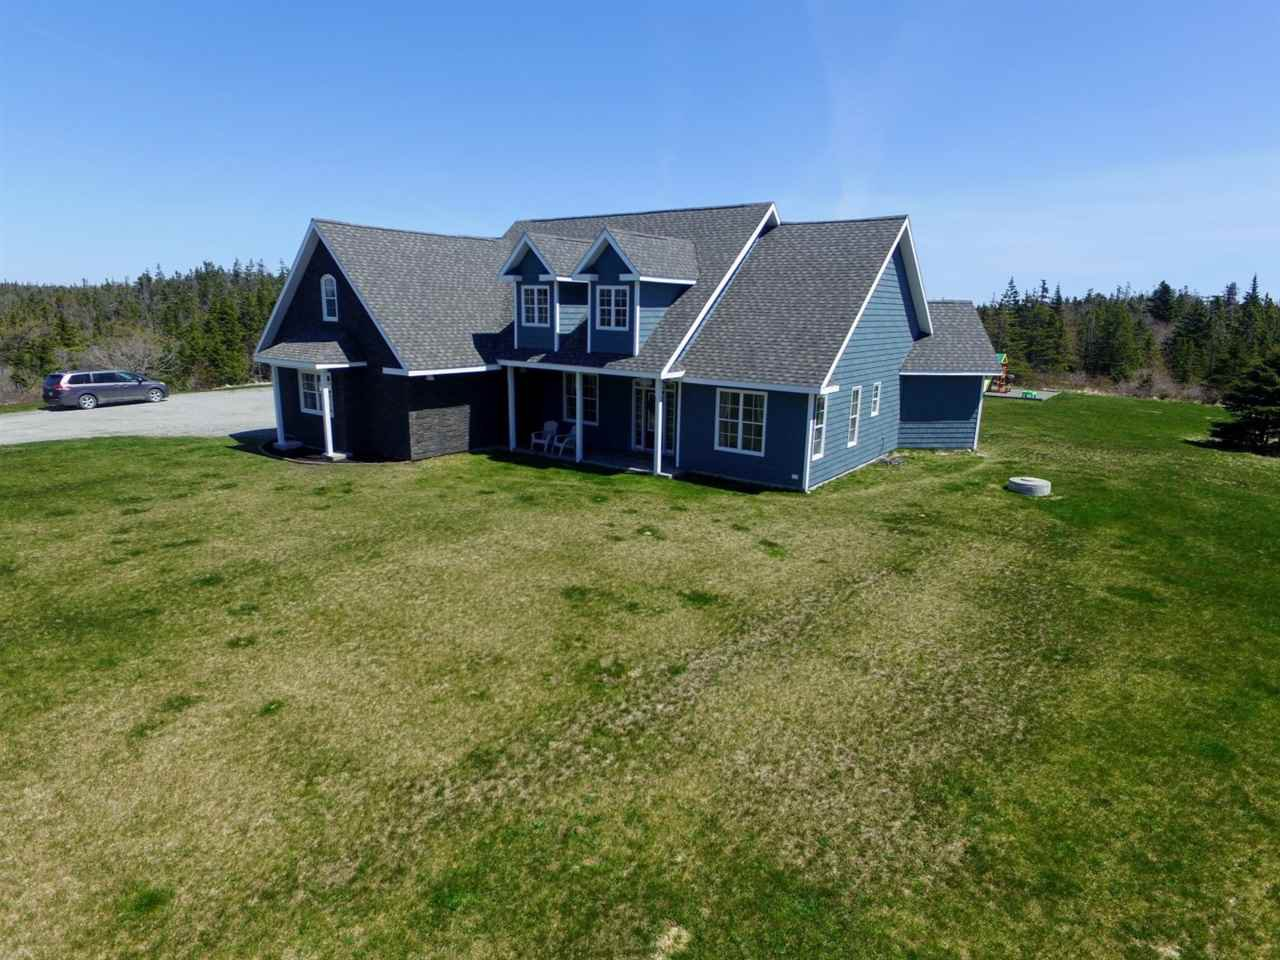 Photo 4: Photos: 1902 Stoney Island Road in Centreville: 407-Shelburne County Residential for sale (South Shore)  : MLS®# 201926888